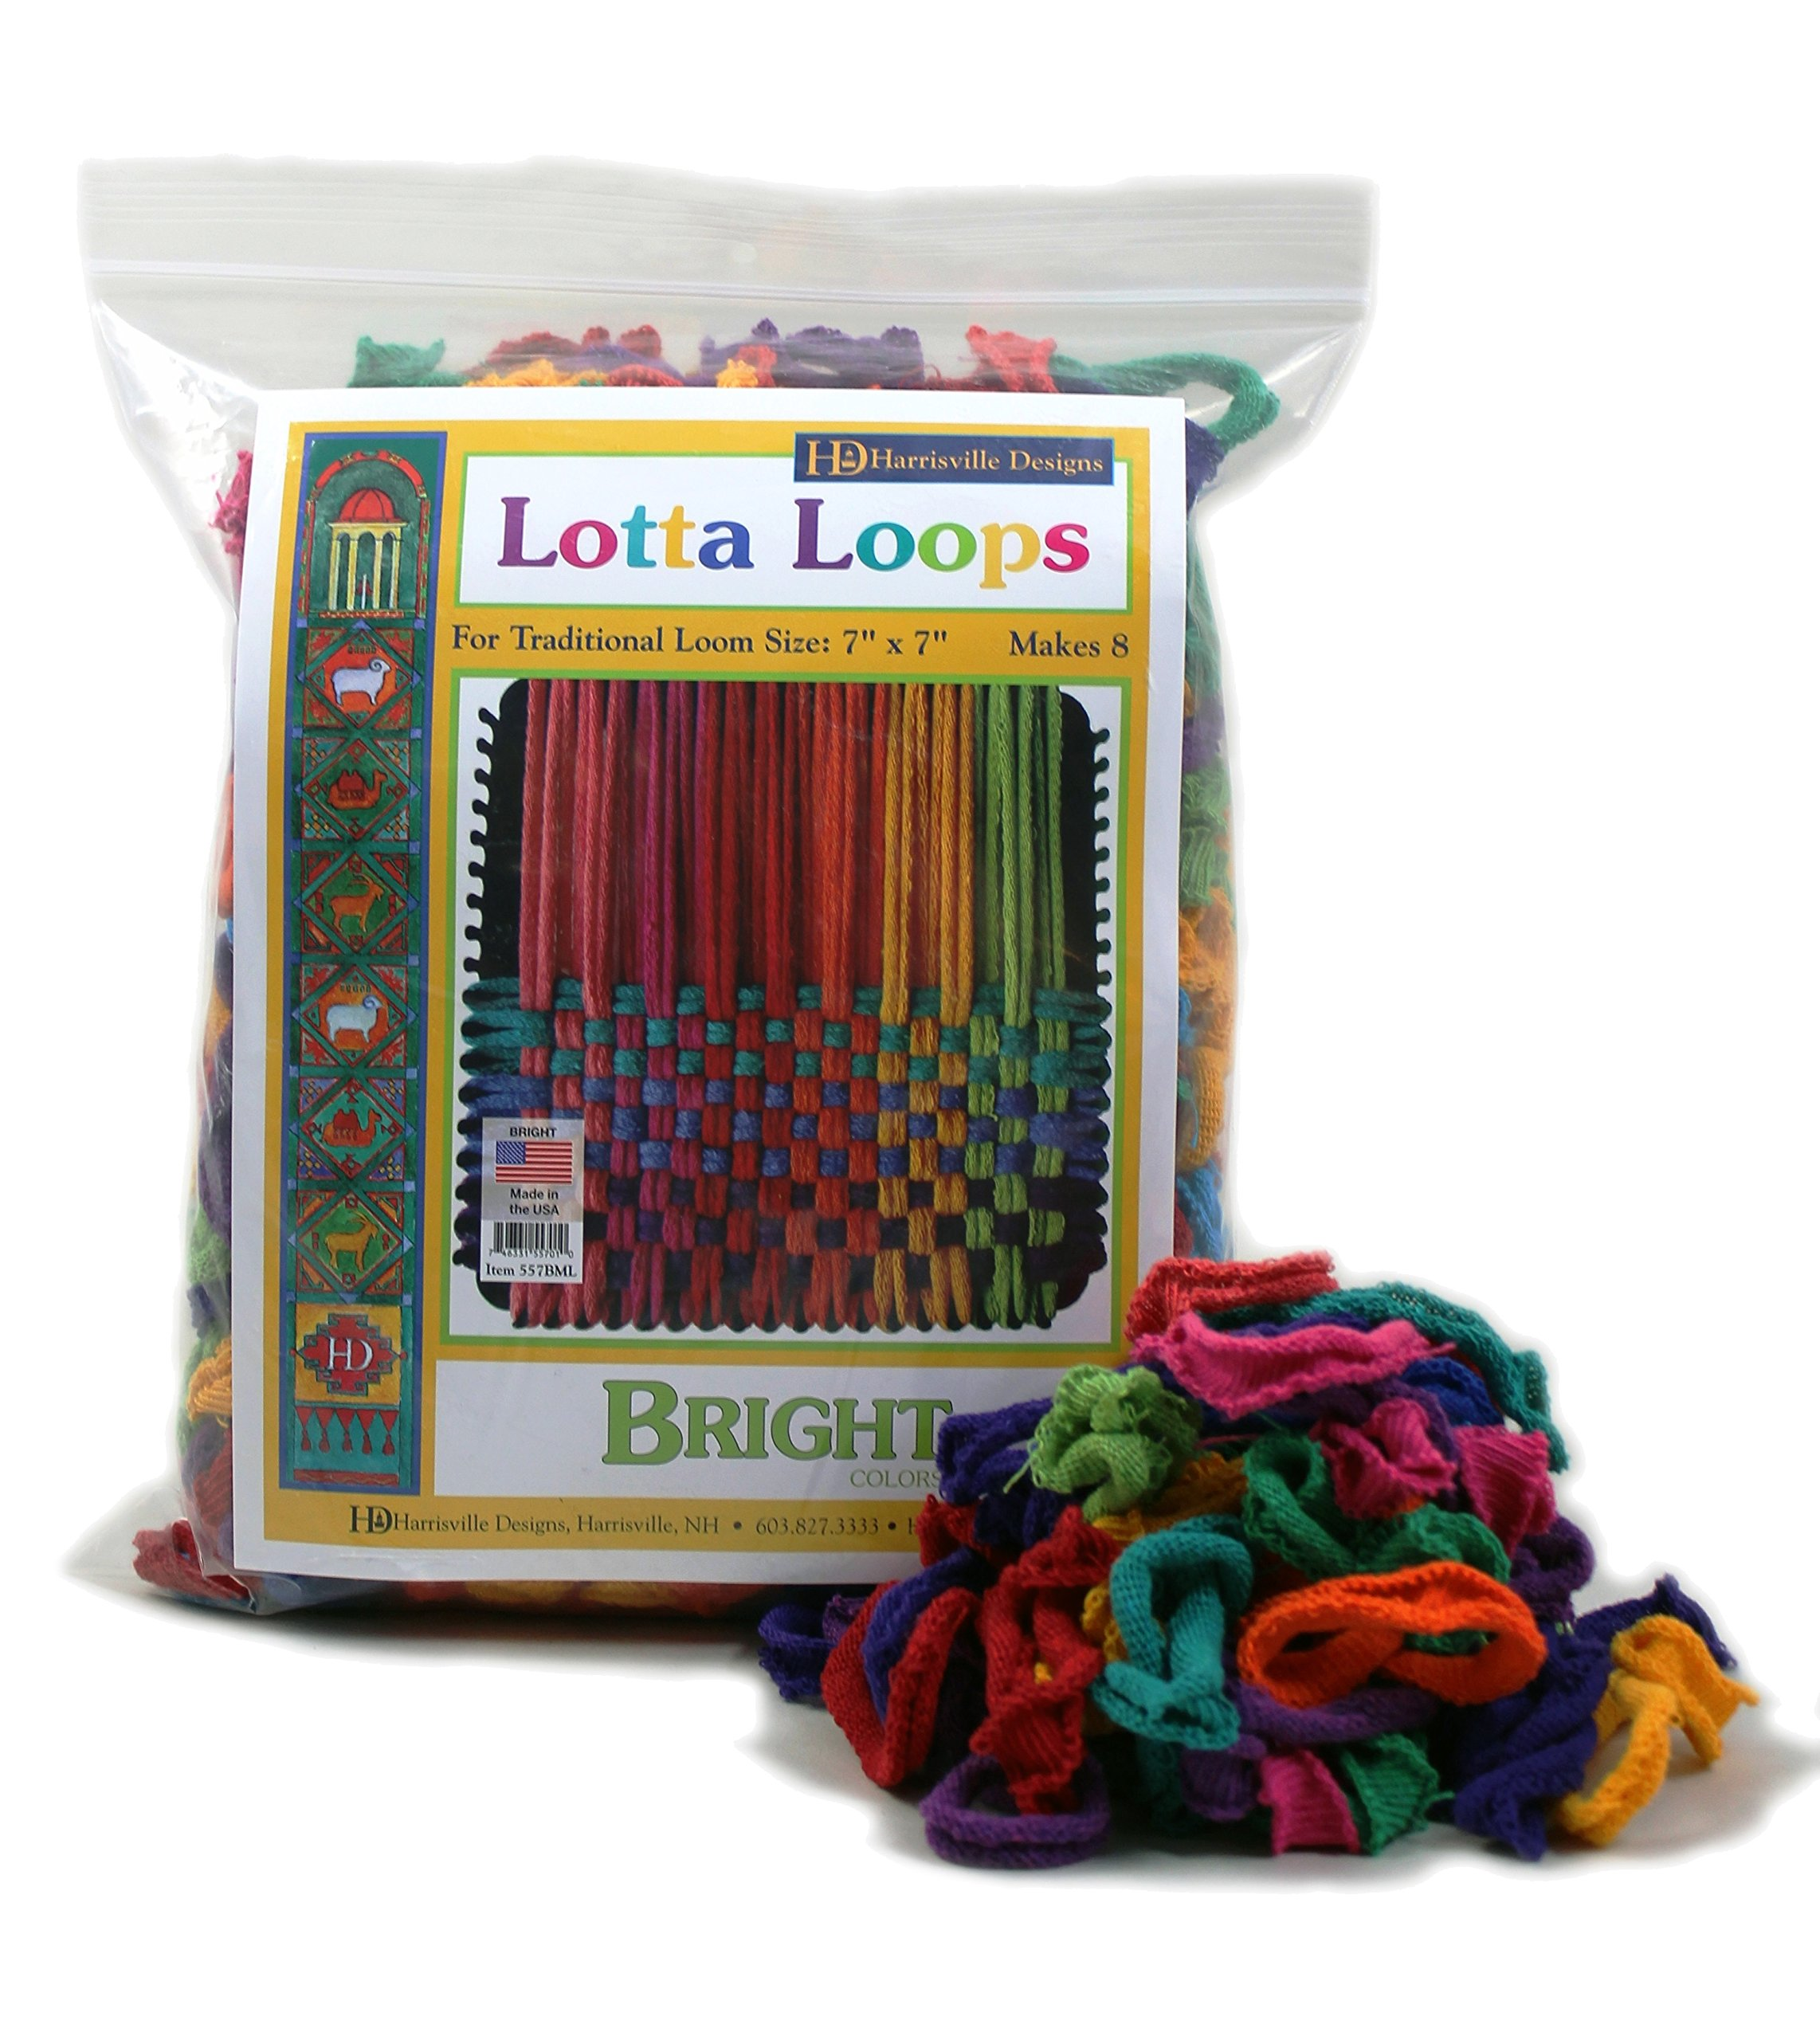 Harrisville Designs A-Lotta Loops - Makes 8 Potholders 6